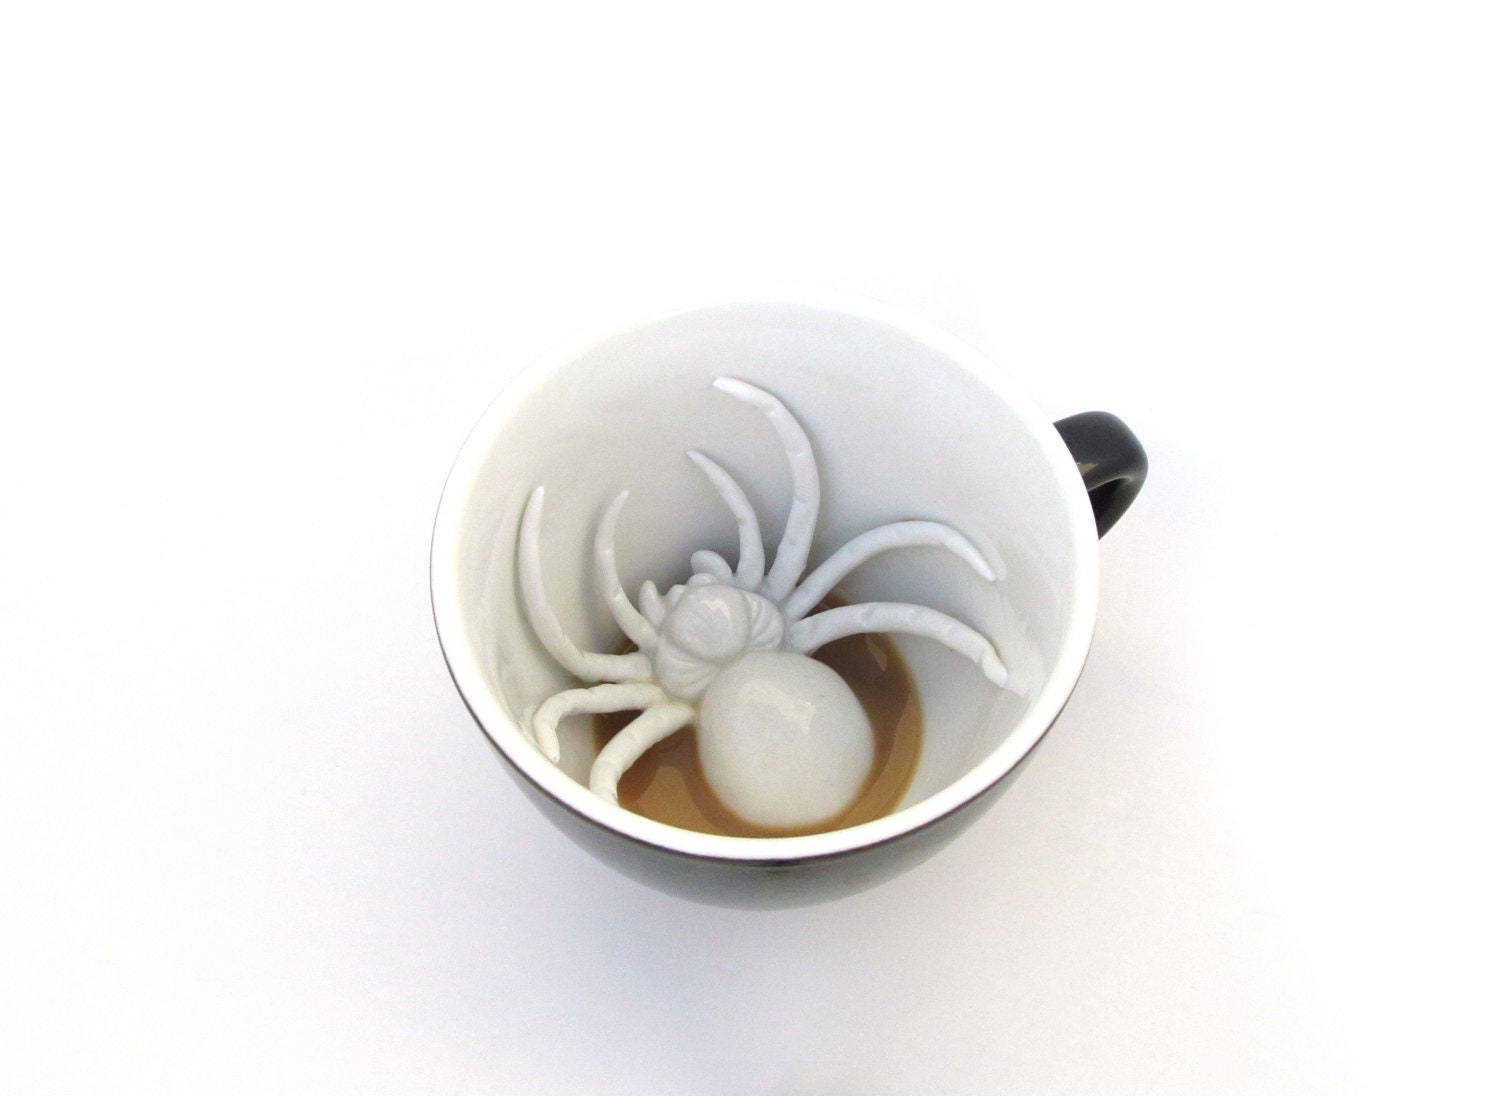 Spider Creepy Cup - creaturecups